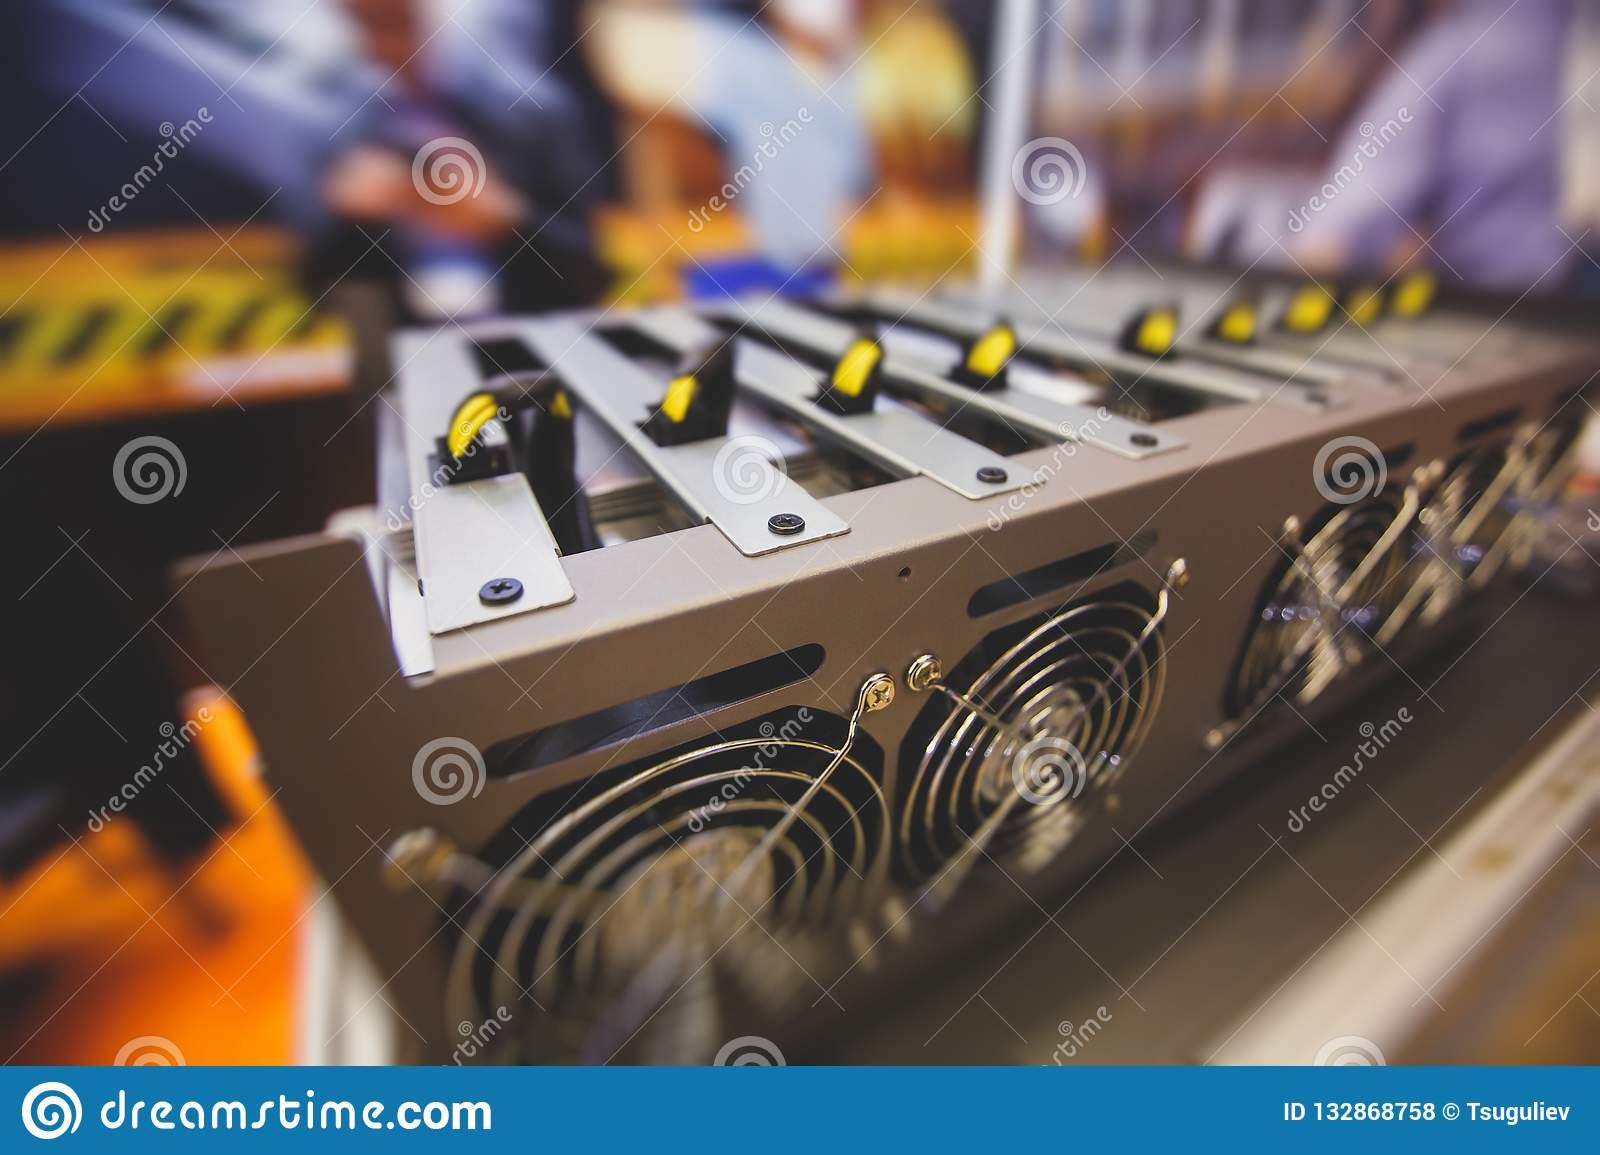 Dryblower mining bitcoins most secure crypto currency list